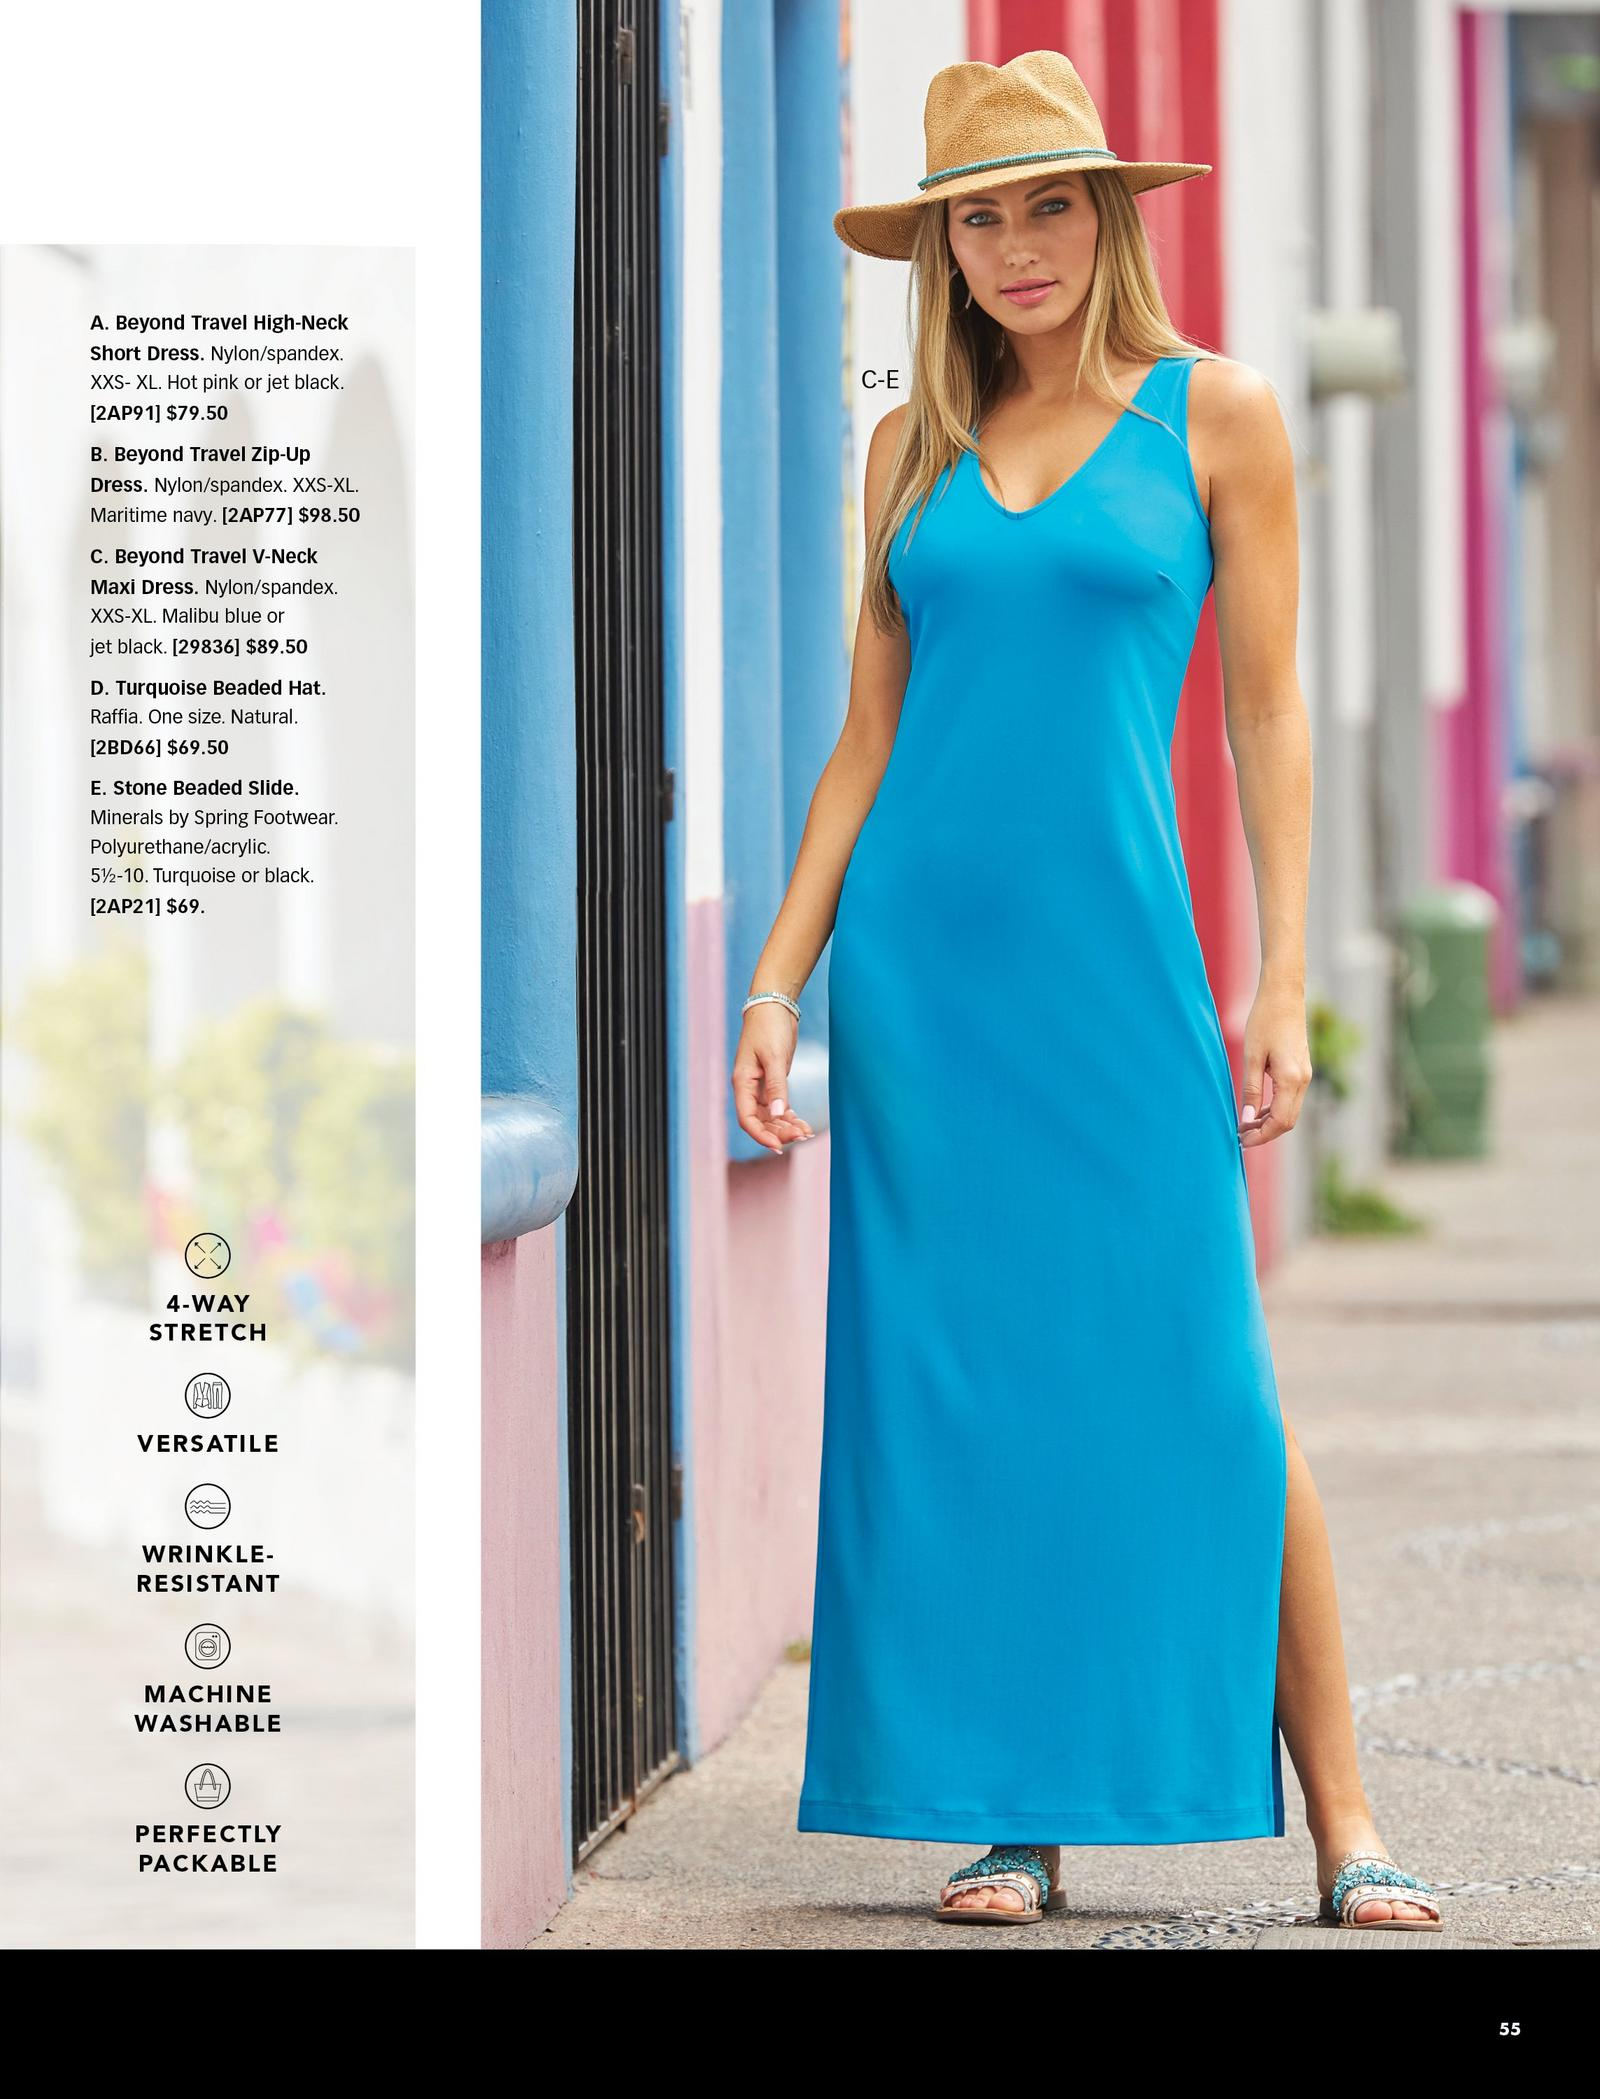 model wearing a blue sleeveless v-neck maxi dress, straw hat, and blue beaded slide sandals.